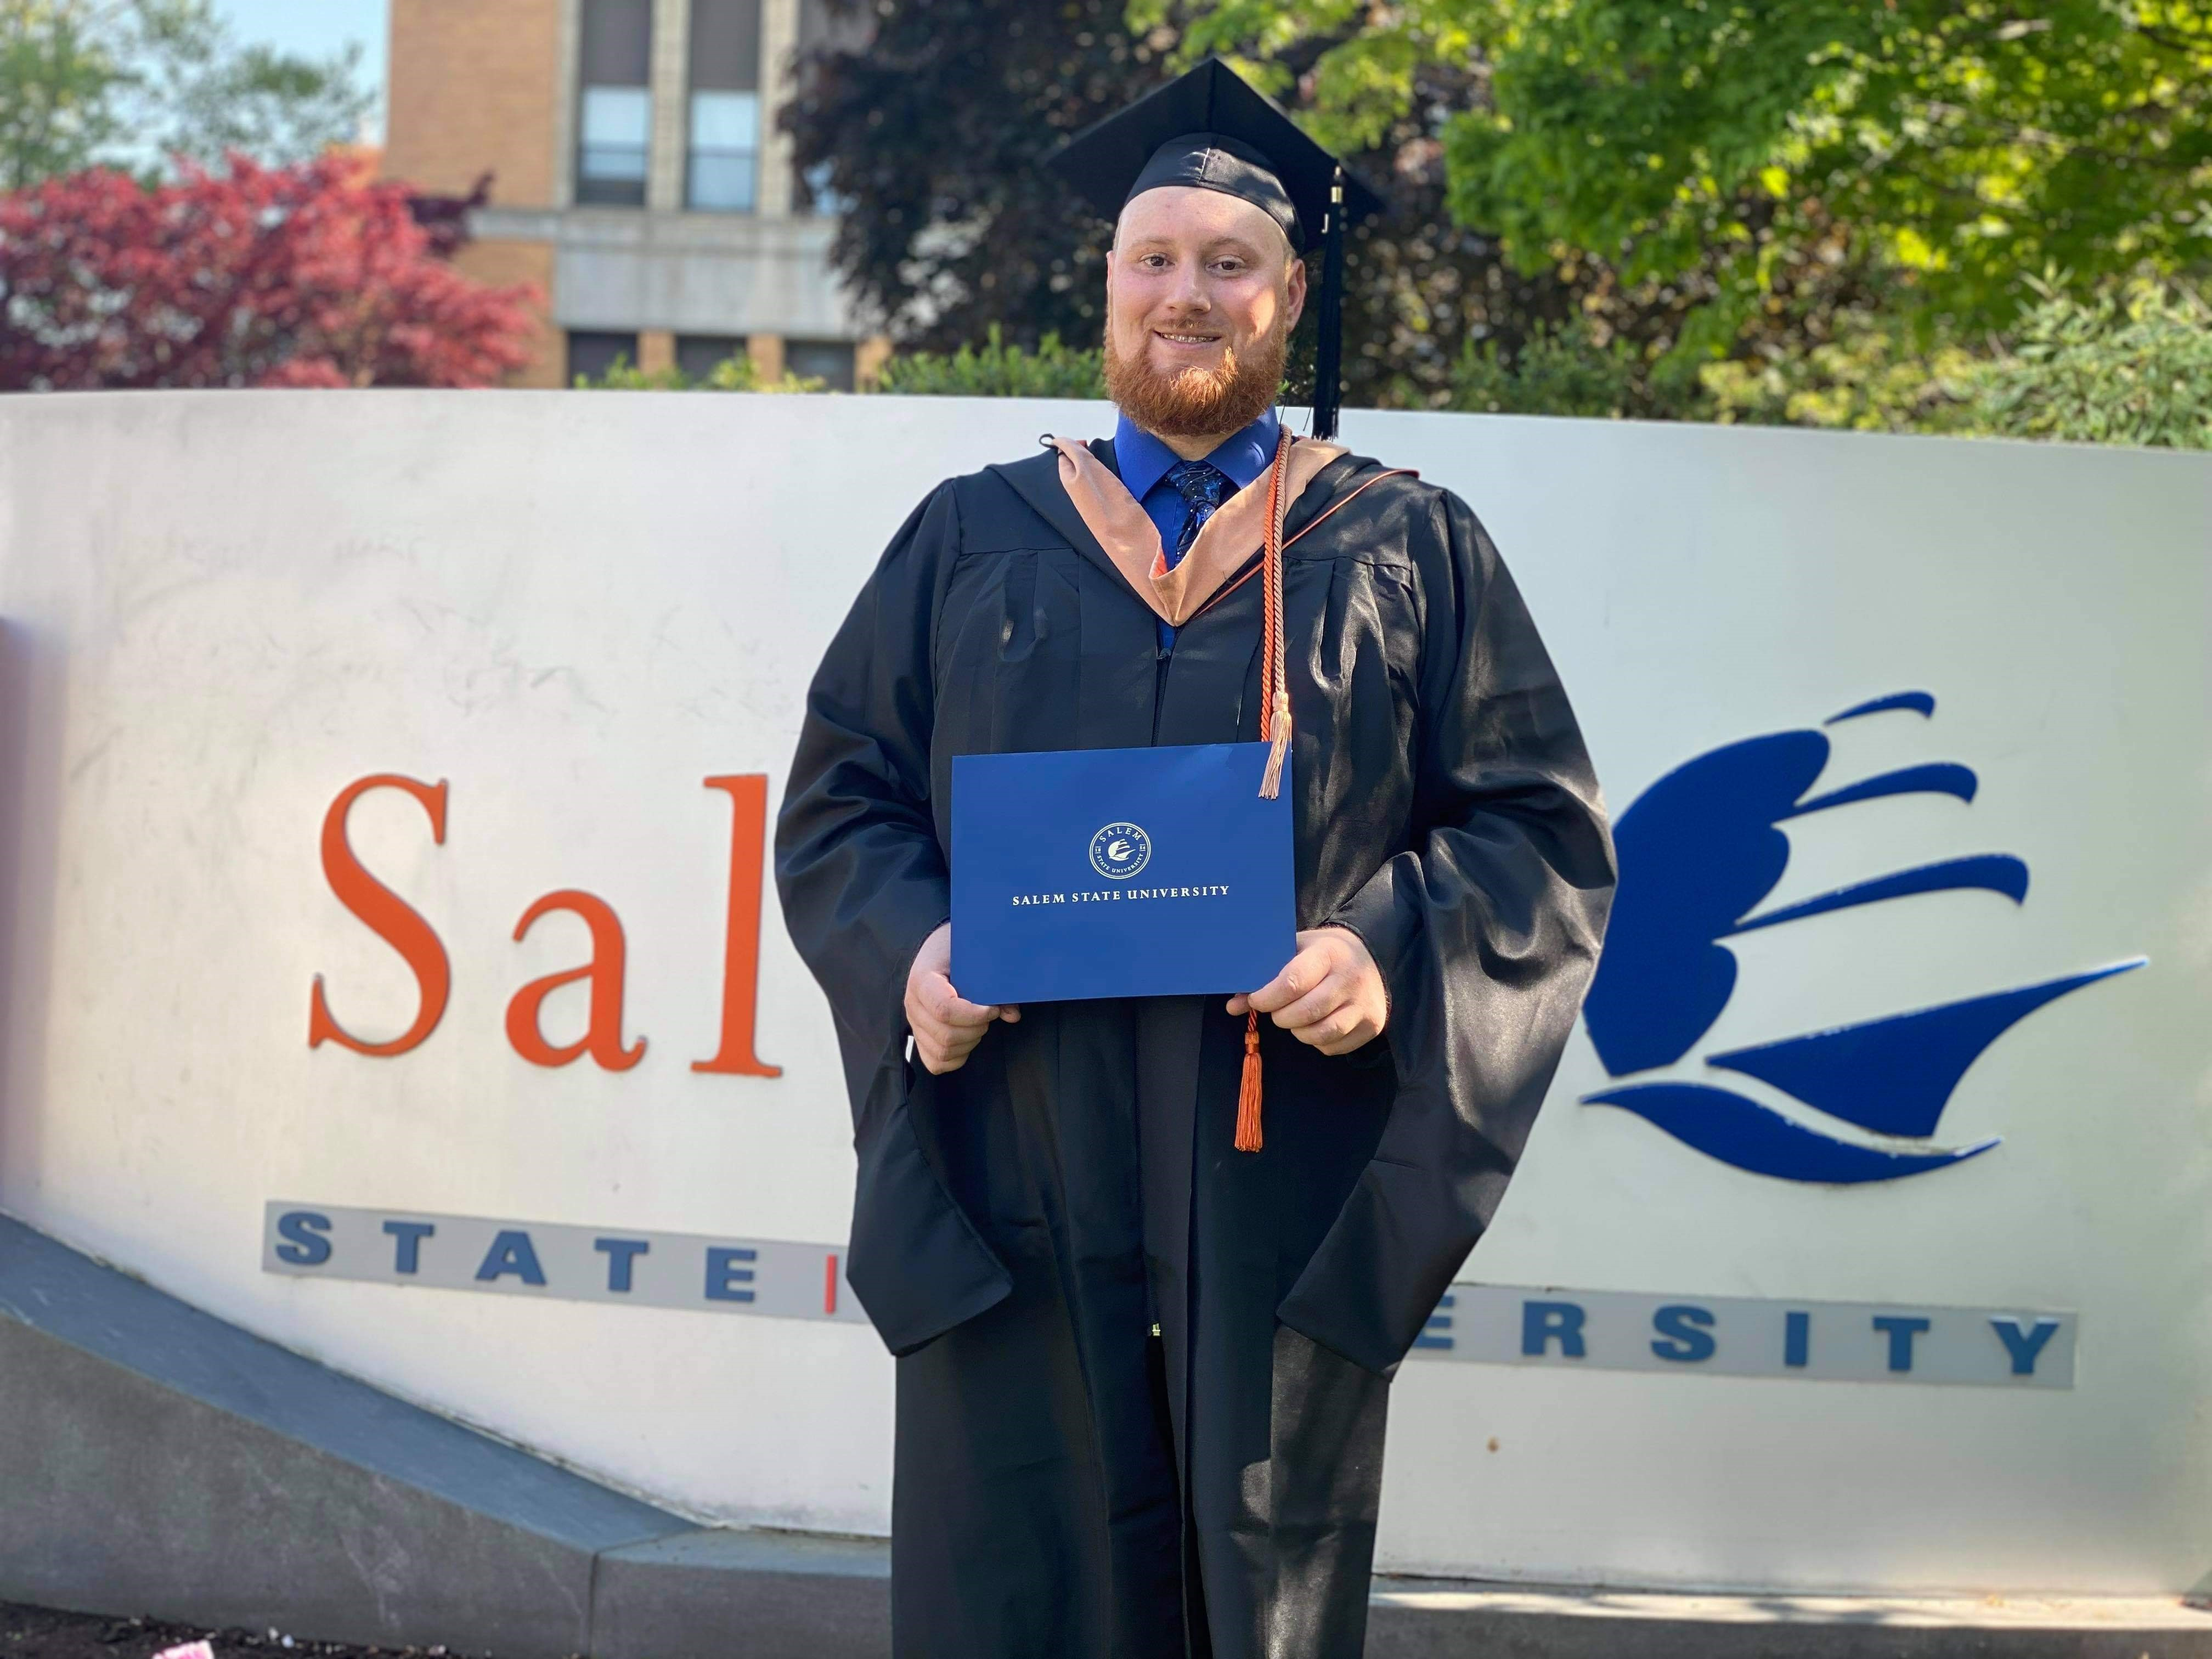 Brian D'Amico, in cap and gown, holds his diploma holder in front of the Salem …